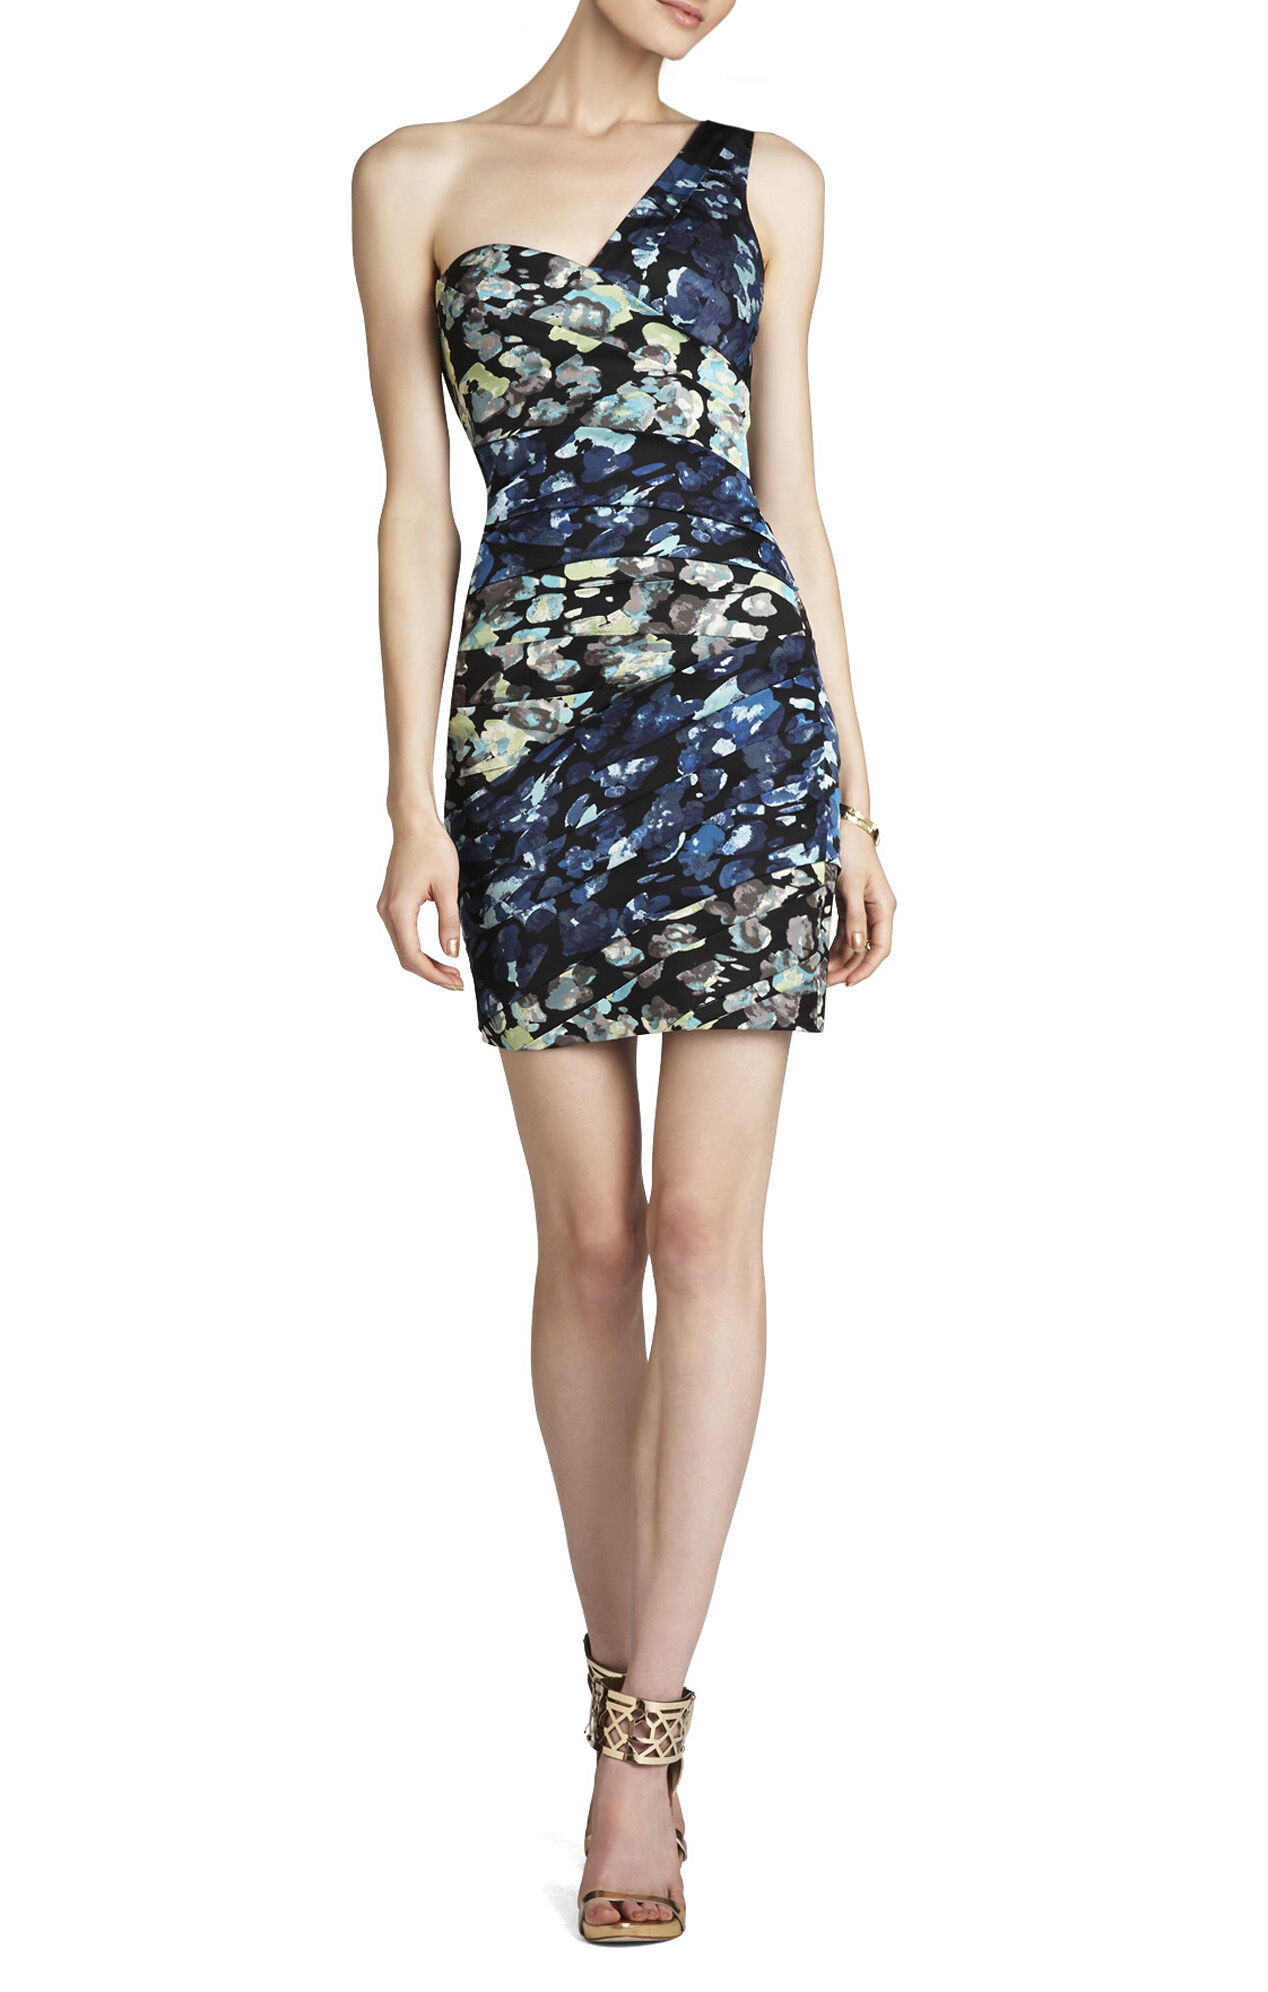 Paige One-Shoulder Print-Blocked Dress